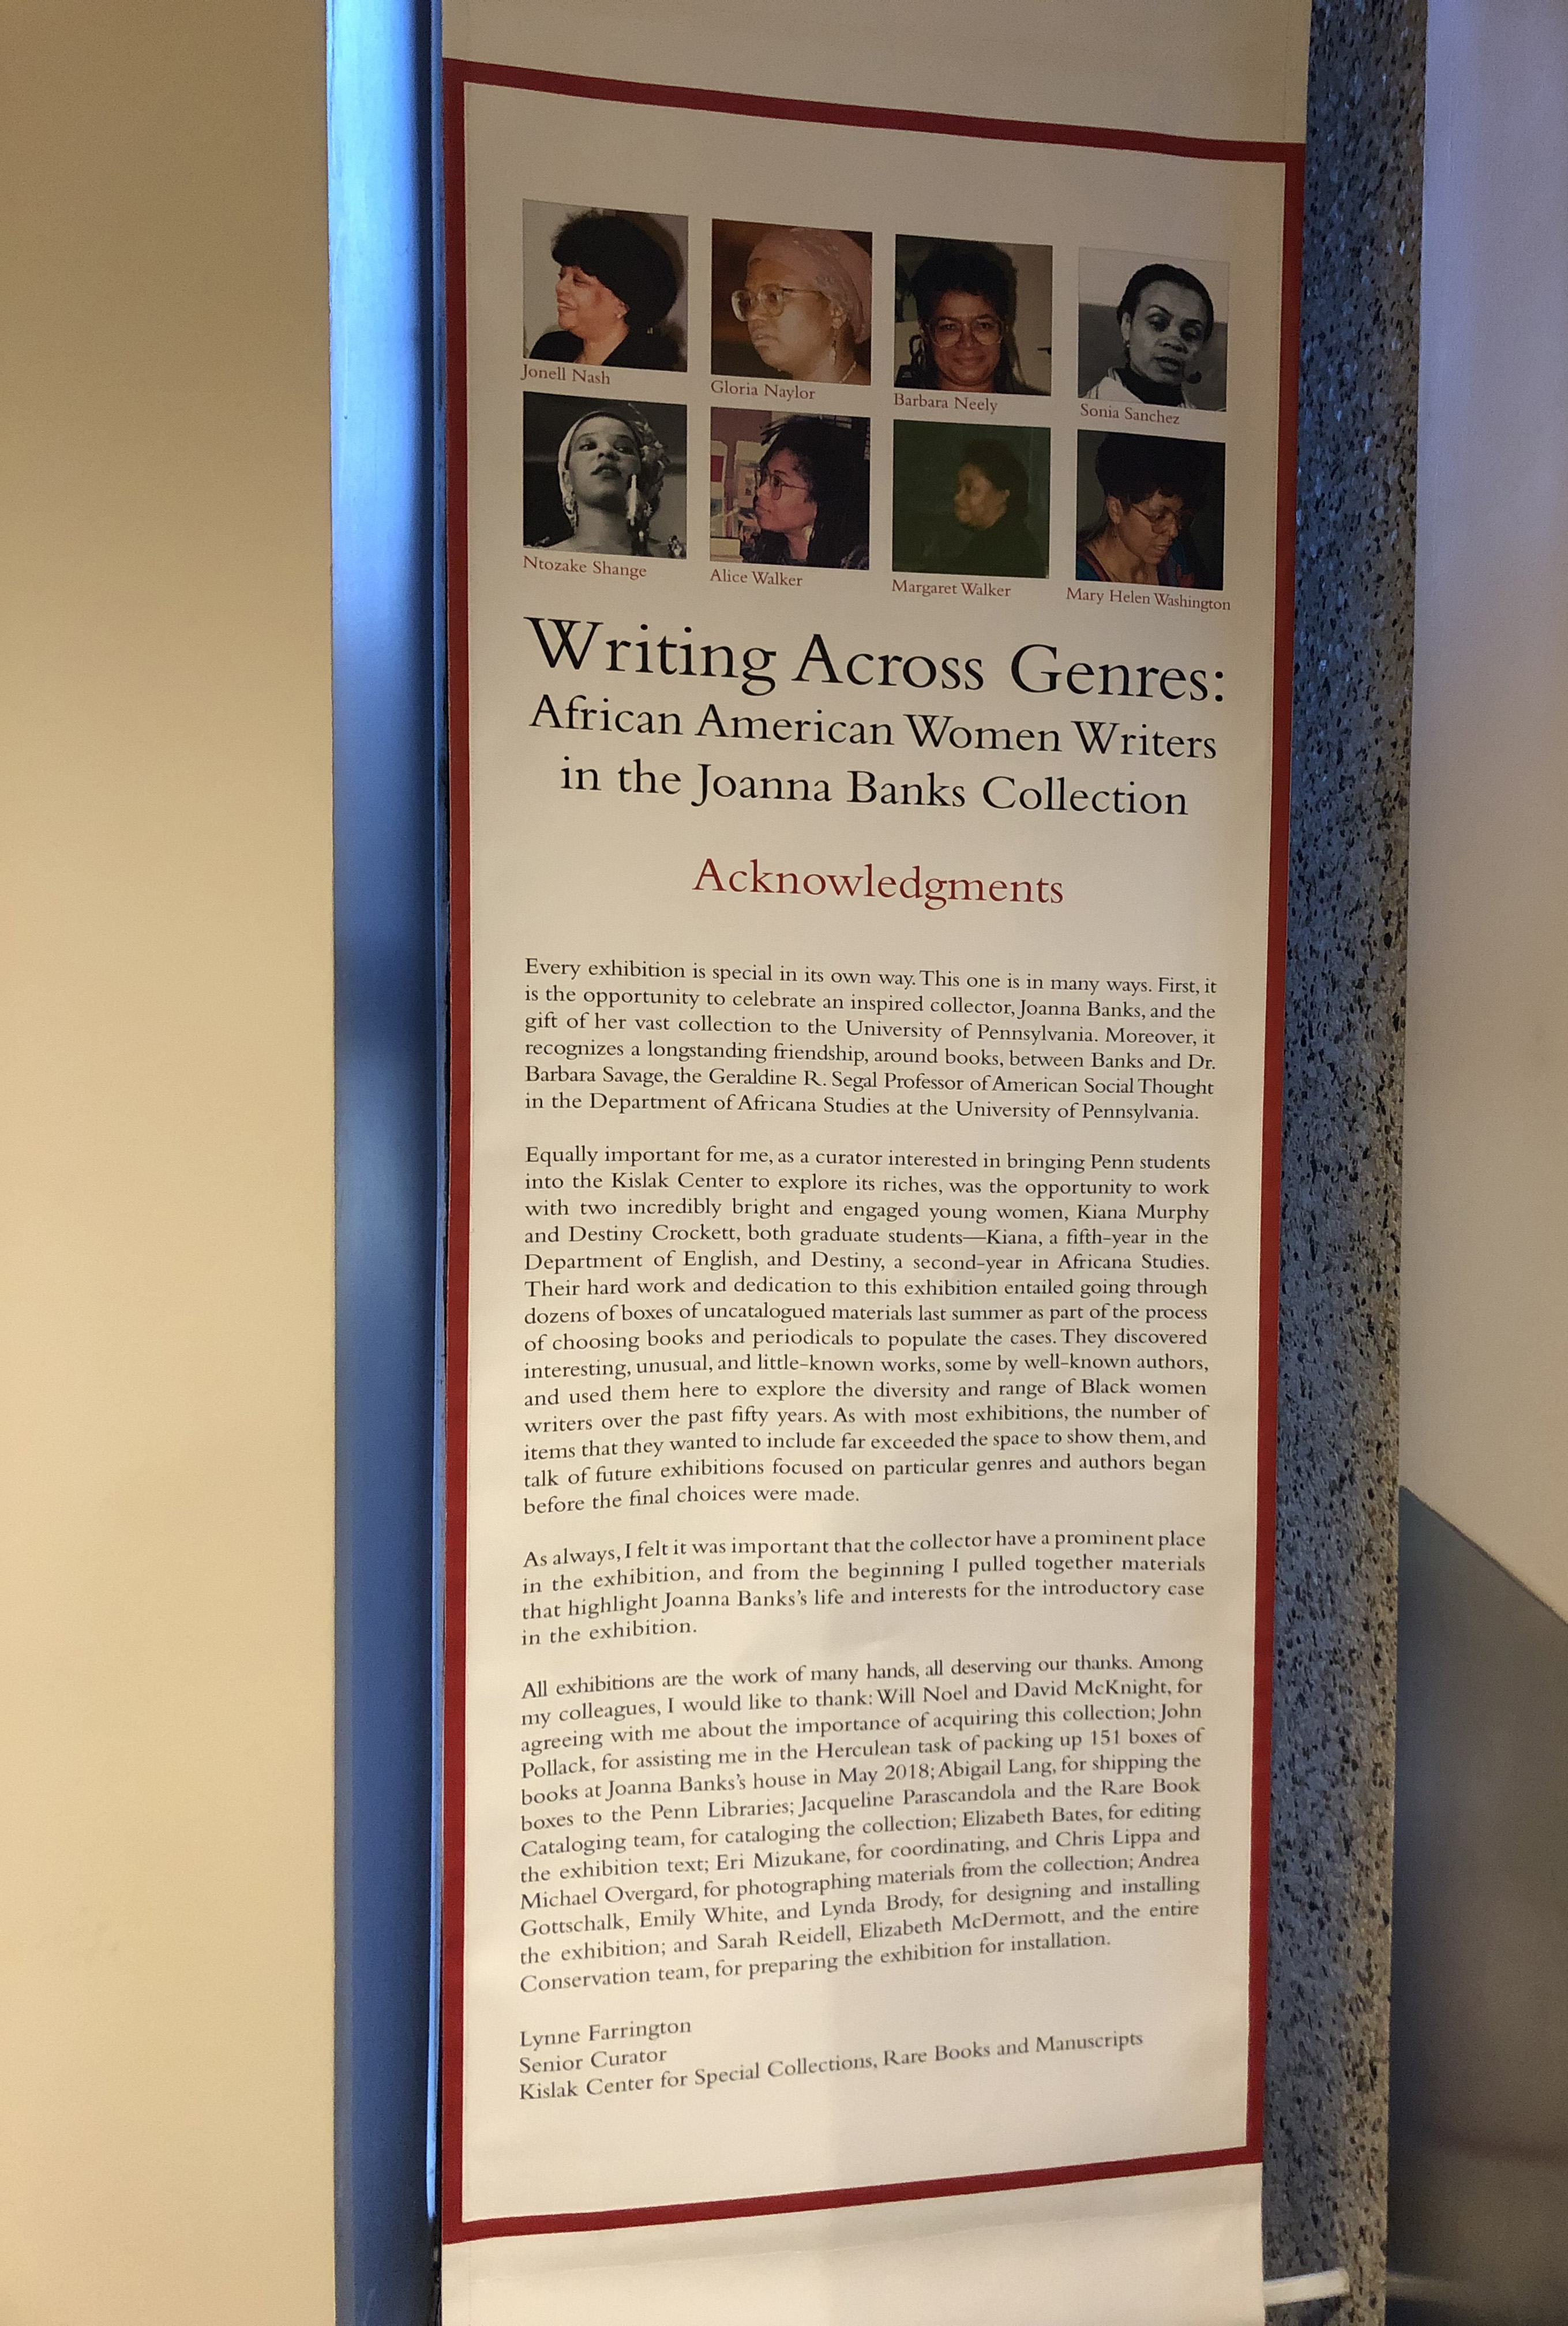 Writing Across Genres Acknowledgements